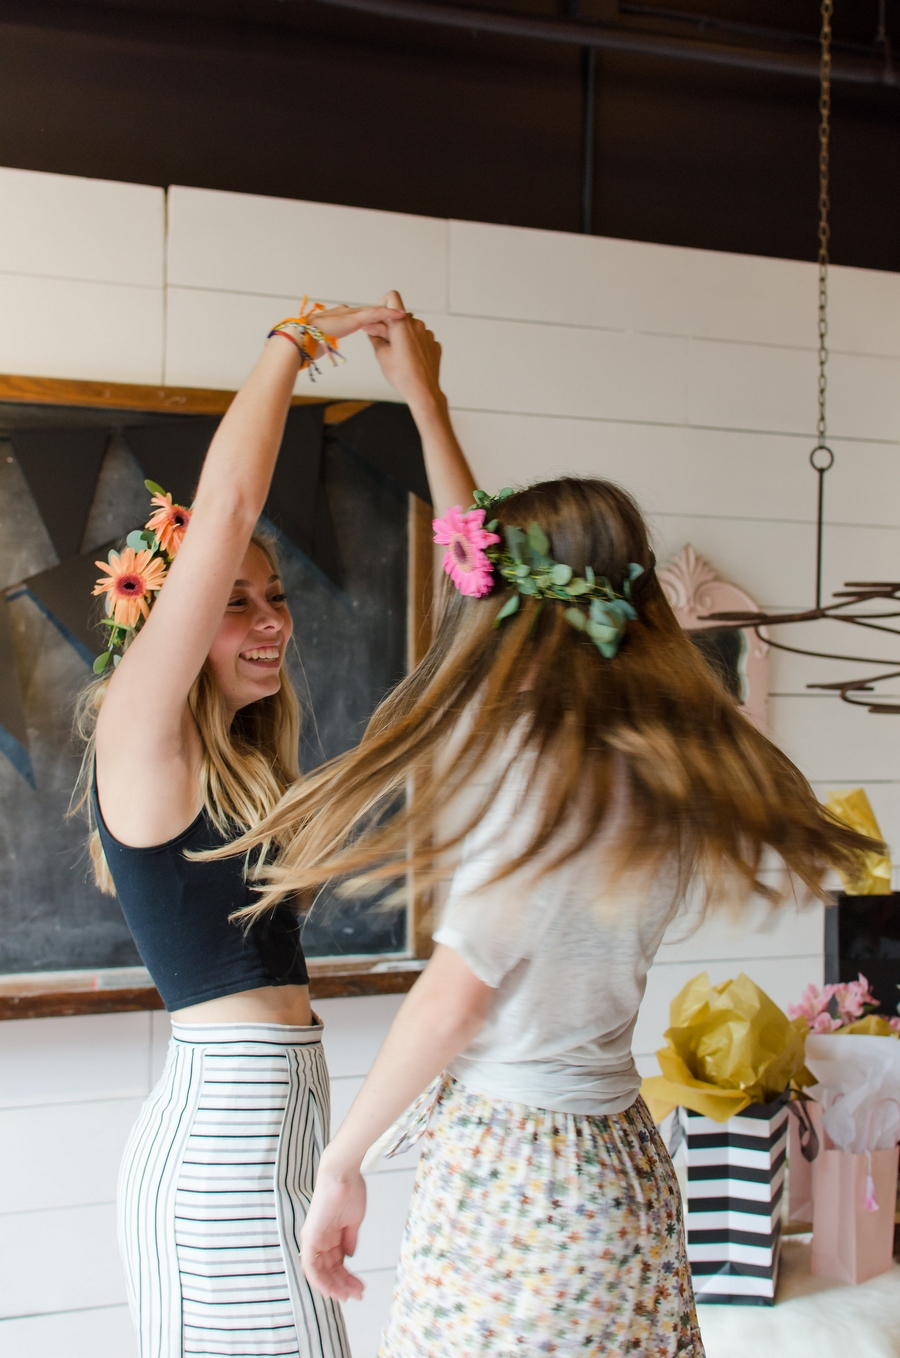 Sweet-16-Flower-Crown-Birthday-Party-City-Farmhouse-Nashville-Photographers+37